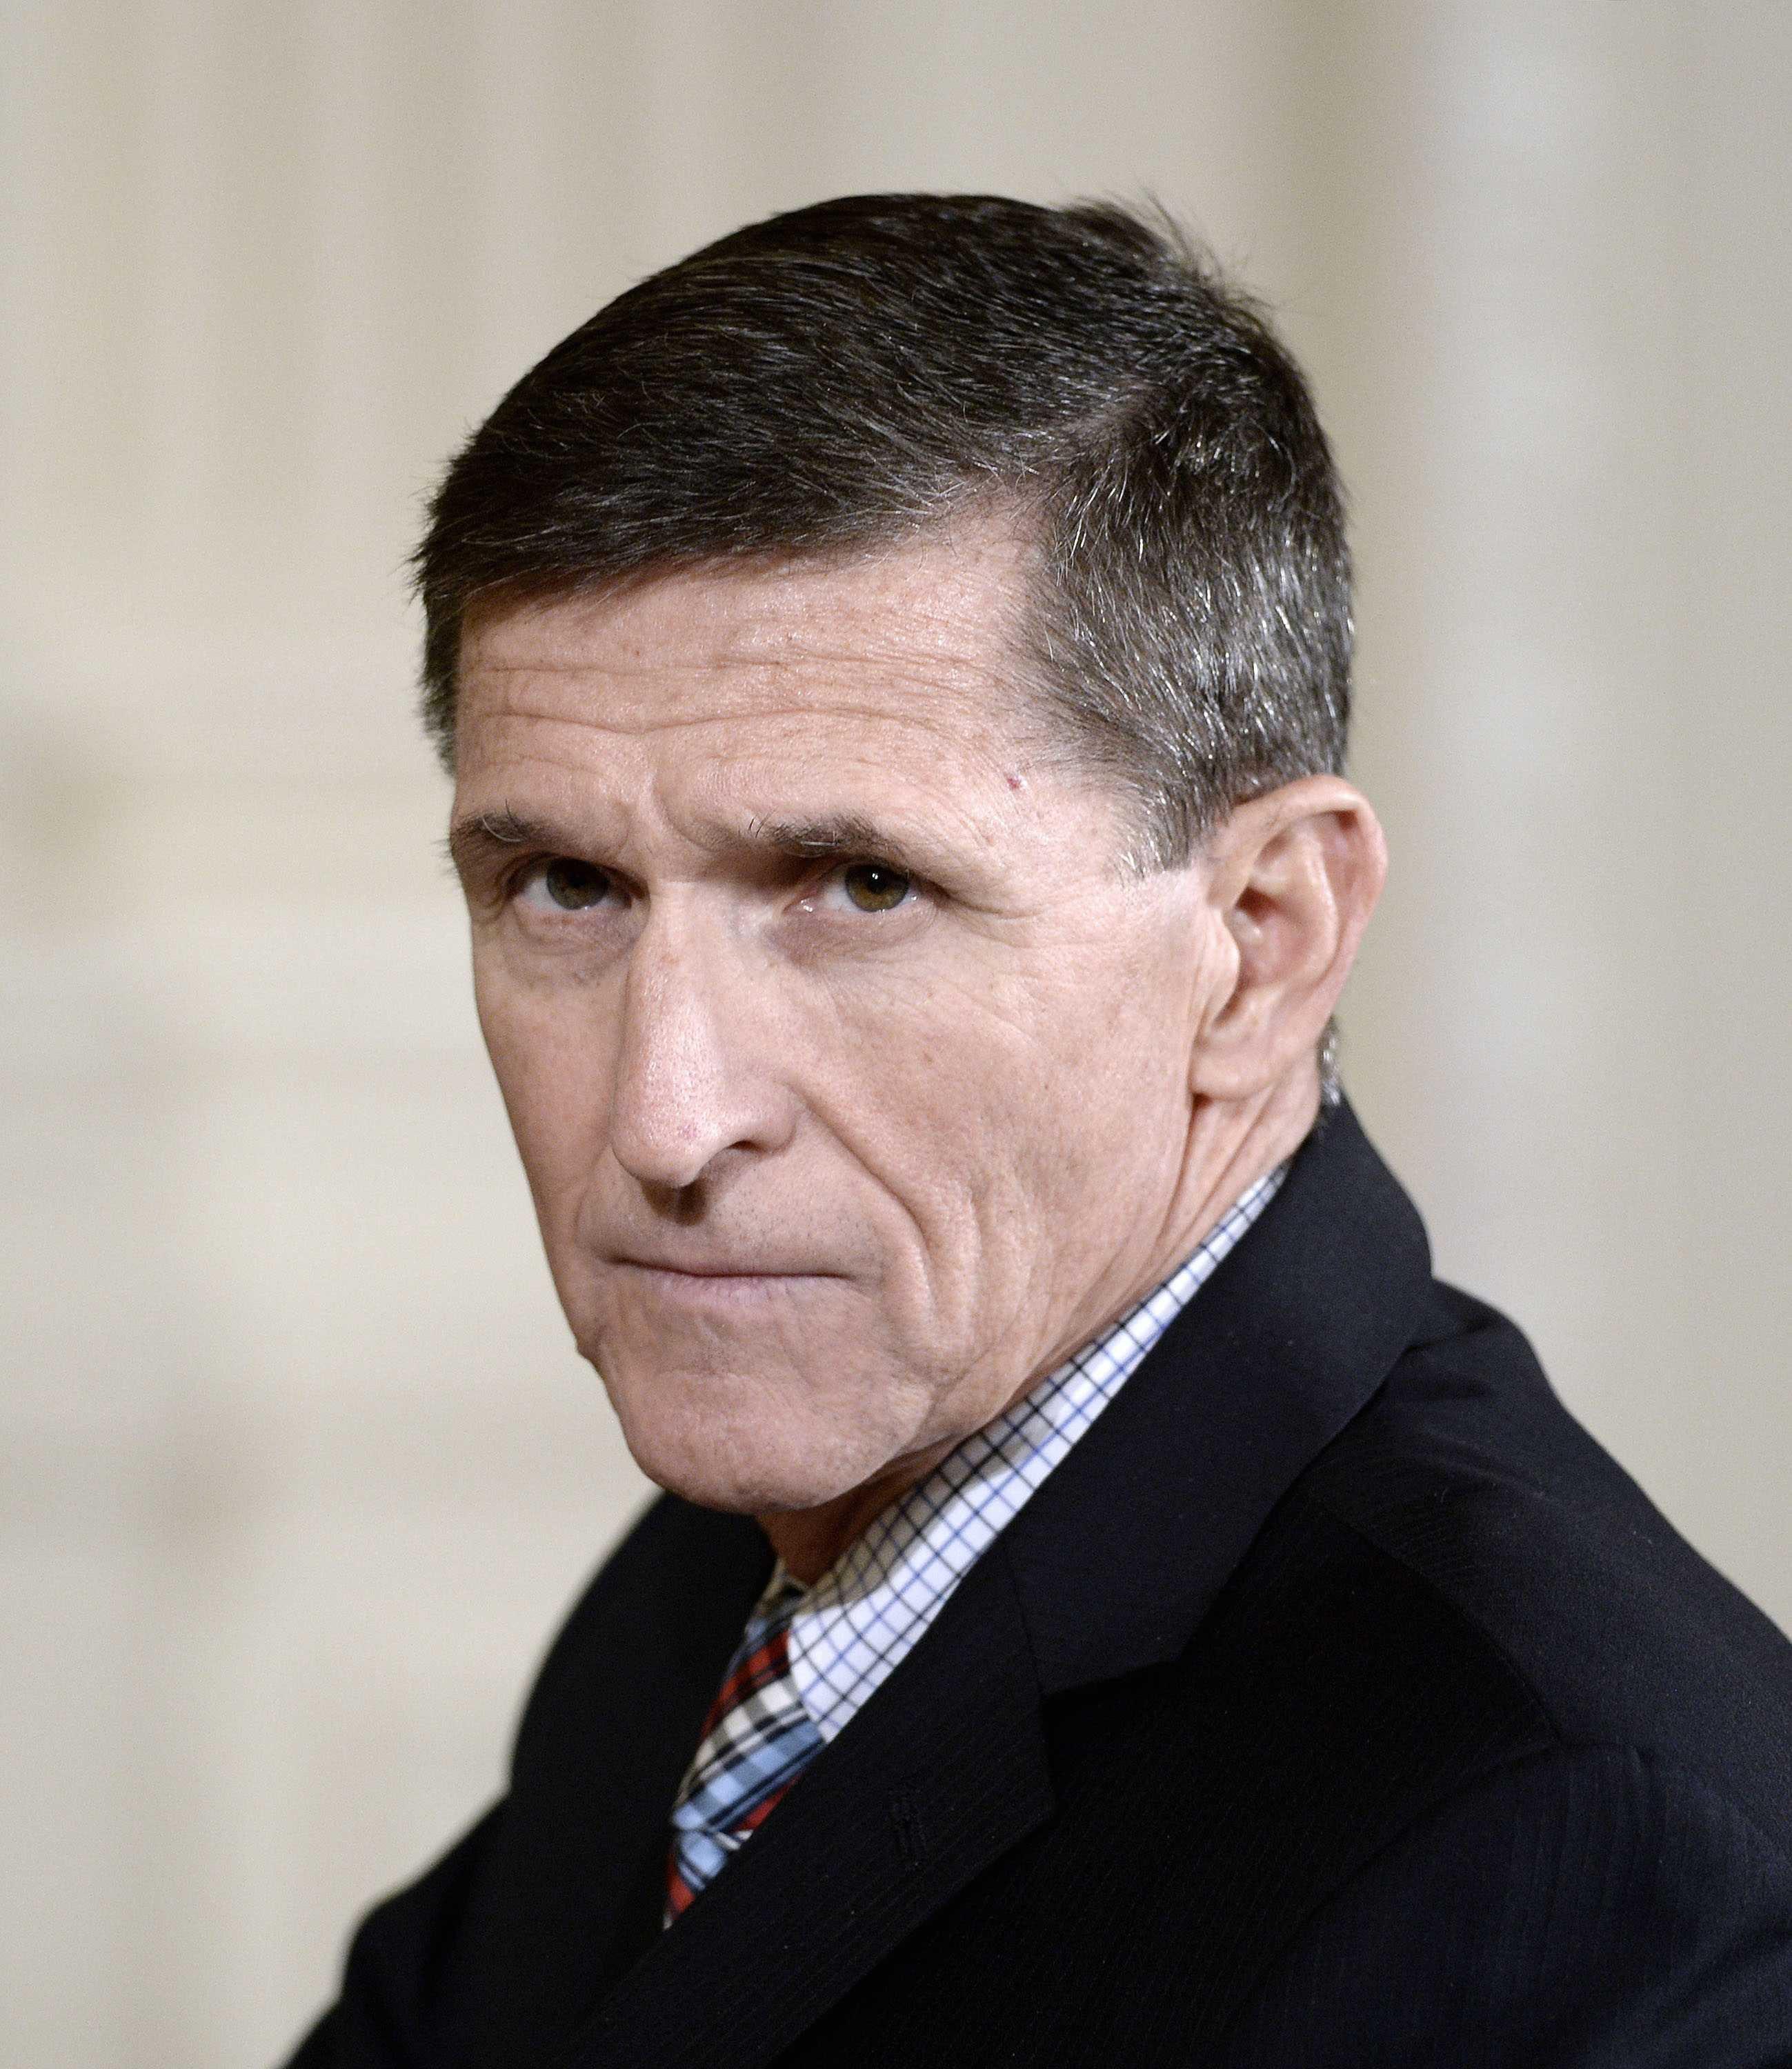 Michael Flynn attends a news conference on February 10, 2017, at the White House in Washington, D.C. Four Democratic senators have charged in a series of letters that the appointment of Flynn as Donald Trump's national security adviser